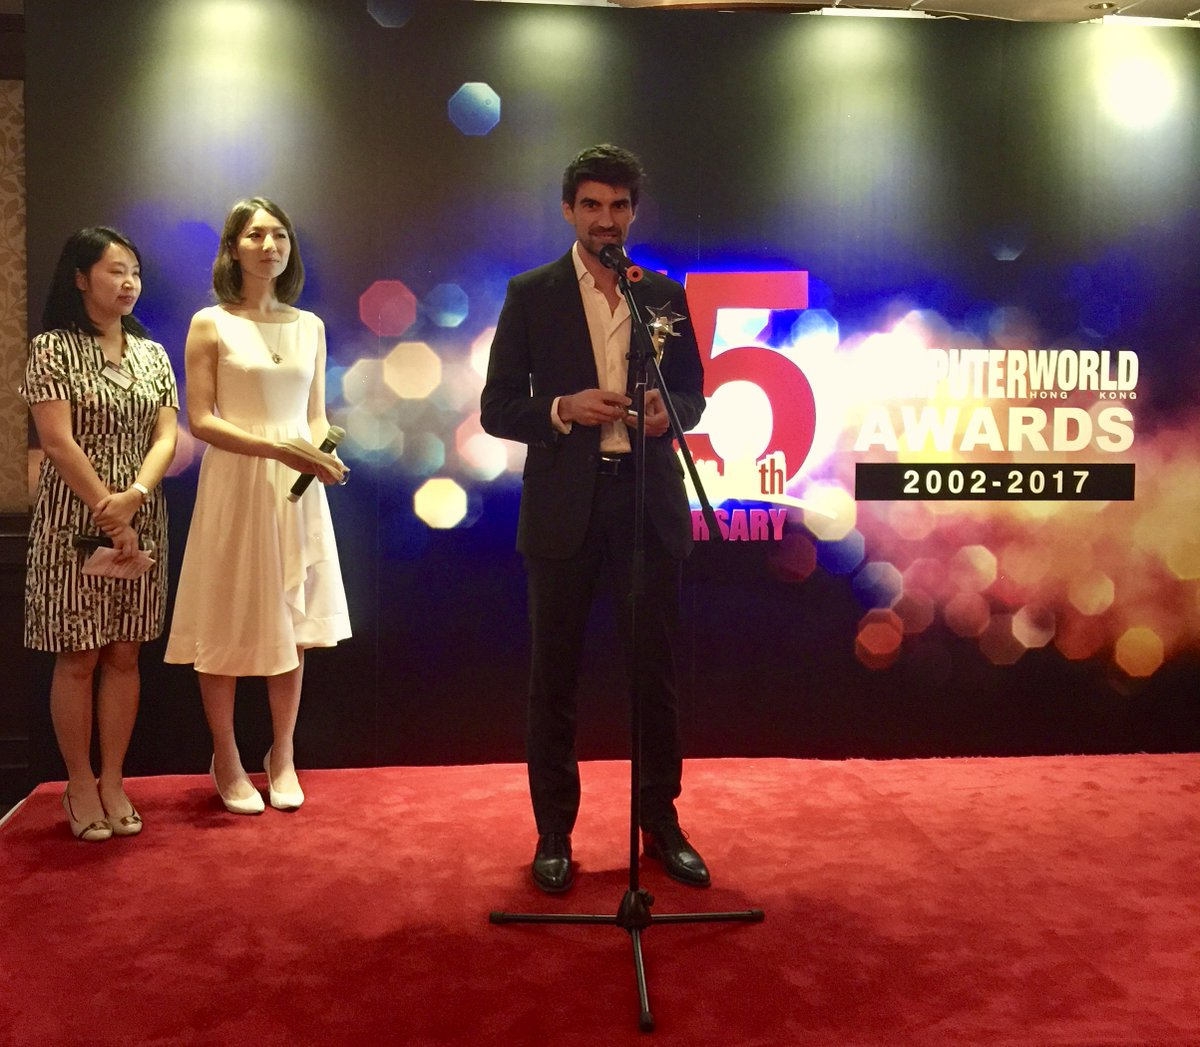 So proud to announce that we have just won Technology Company of the Year in the @computerworldhk #awards 2017! #cwhkawards <br>http://pic.twitter.com/b1nFg1mKw2